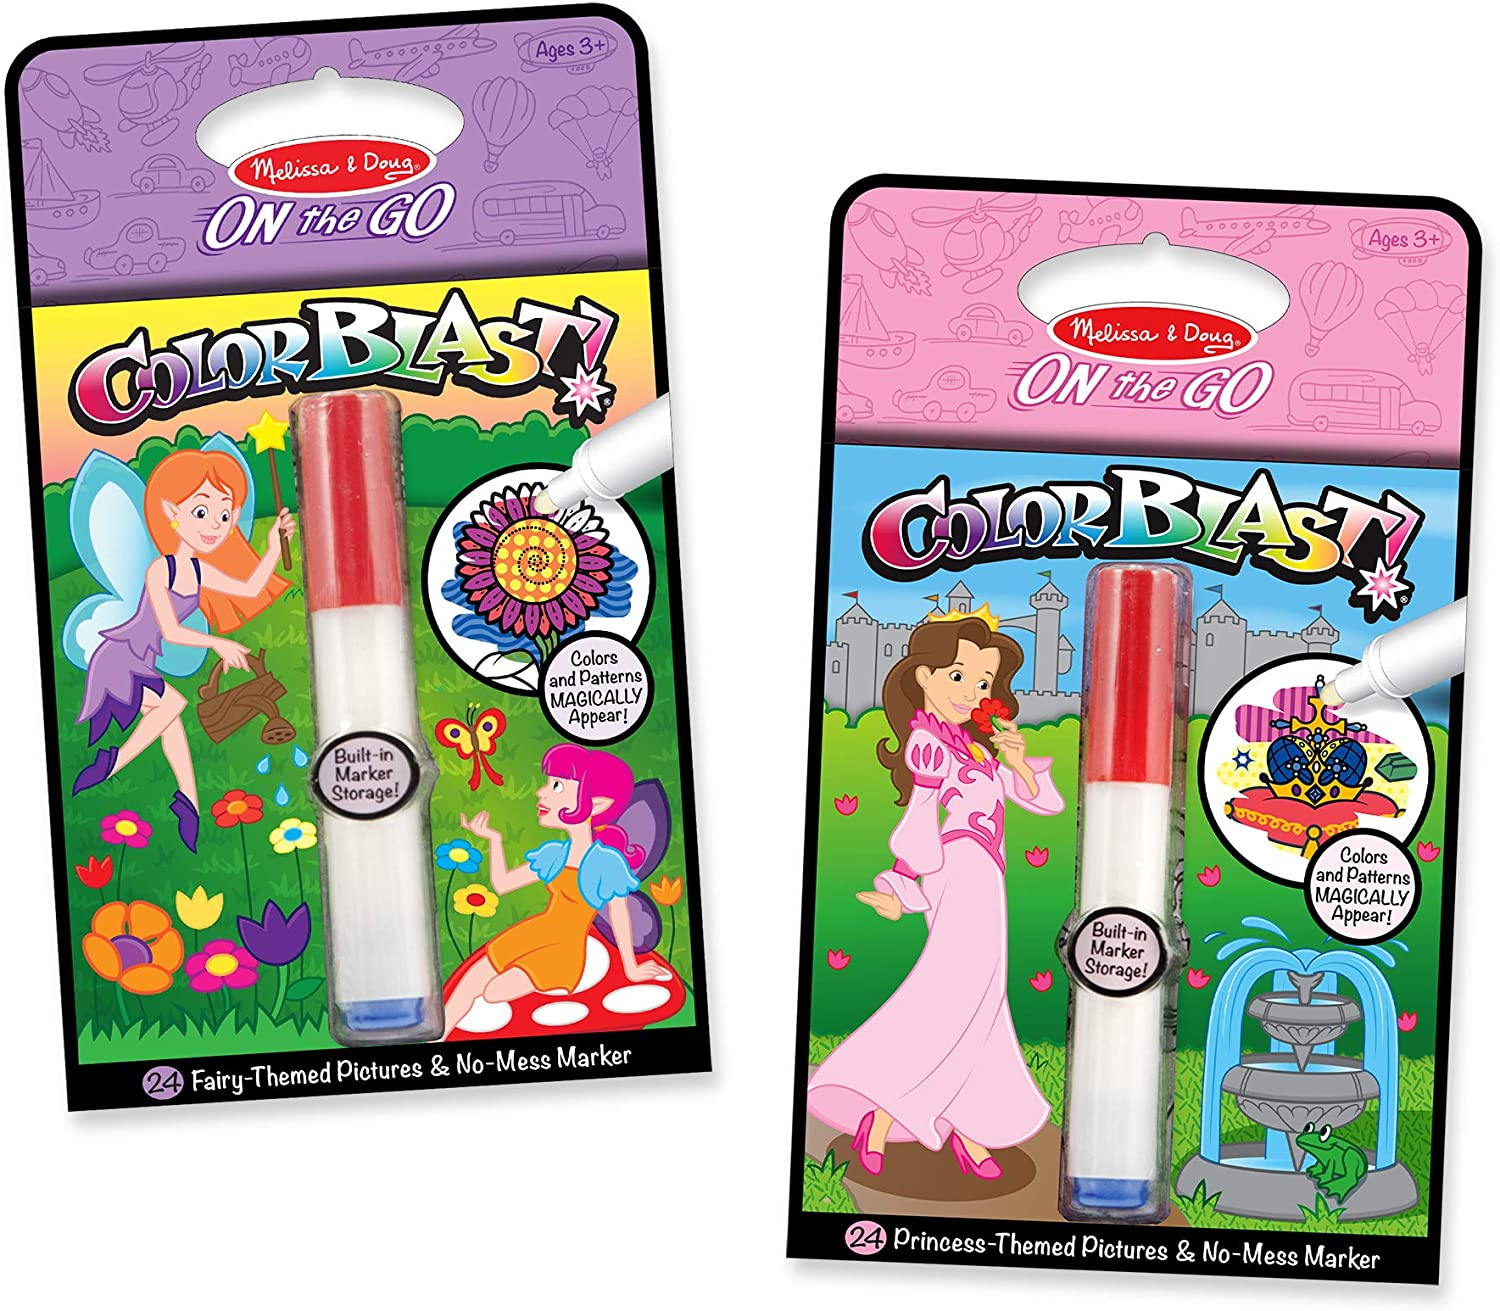 Melissa & Doug On the Go ColorBlast! Princess and Fairy Color-Reveal Coloring Books, 2-Pack